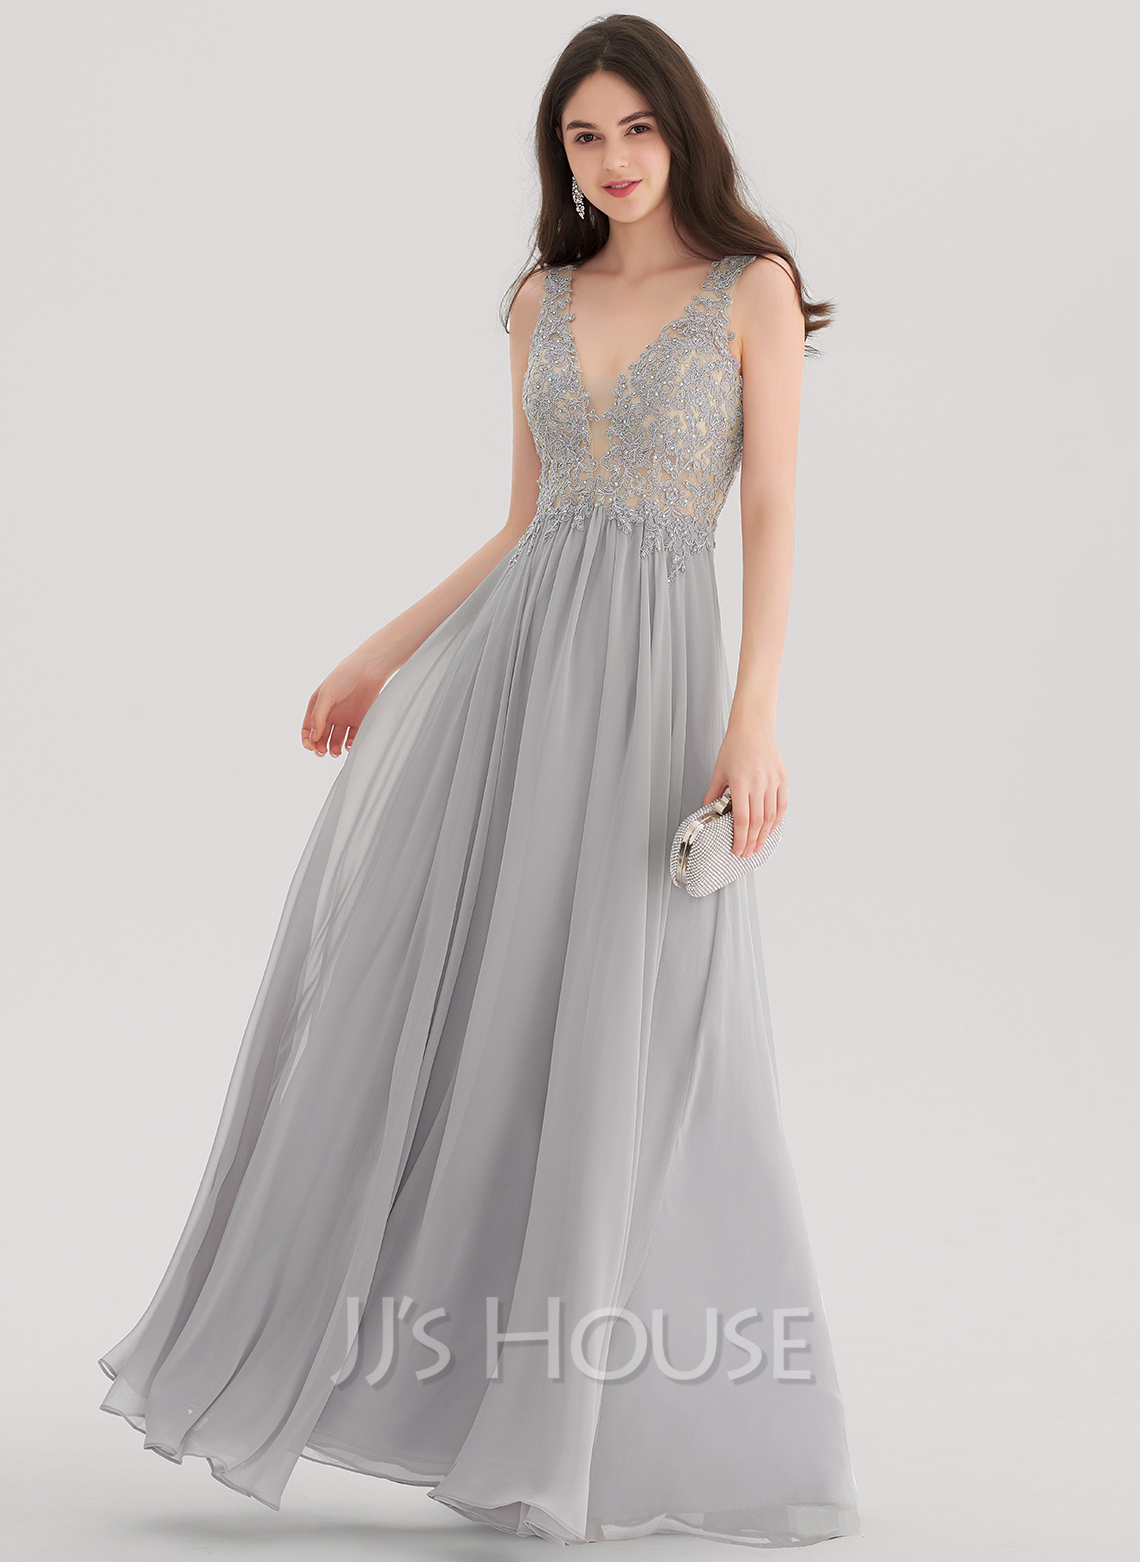 6552050c122a A-Line/Princess V-neck Floor-Length Chiffon Prom Dresses With Beading